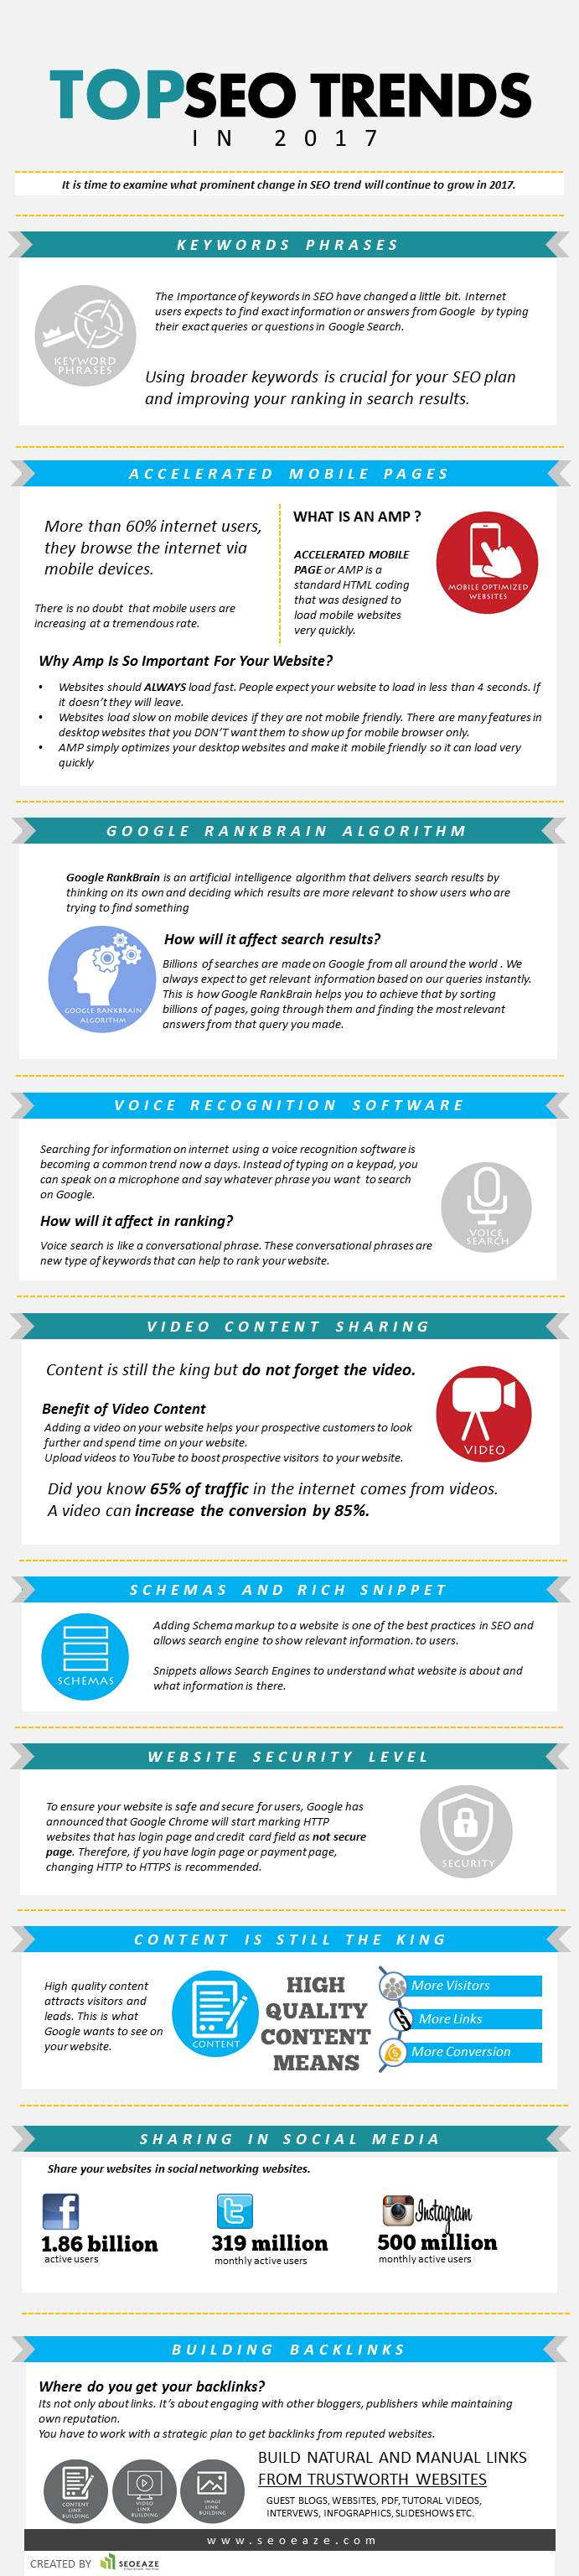 10 Top SEO Trends 2017 Infographic